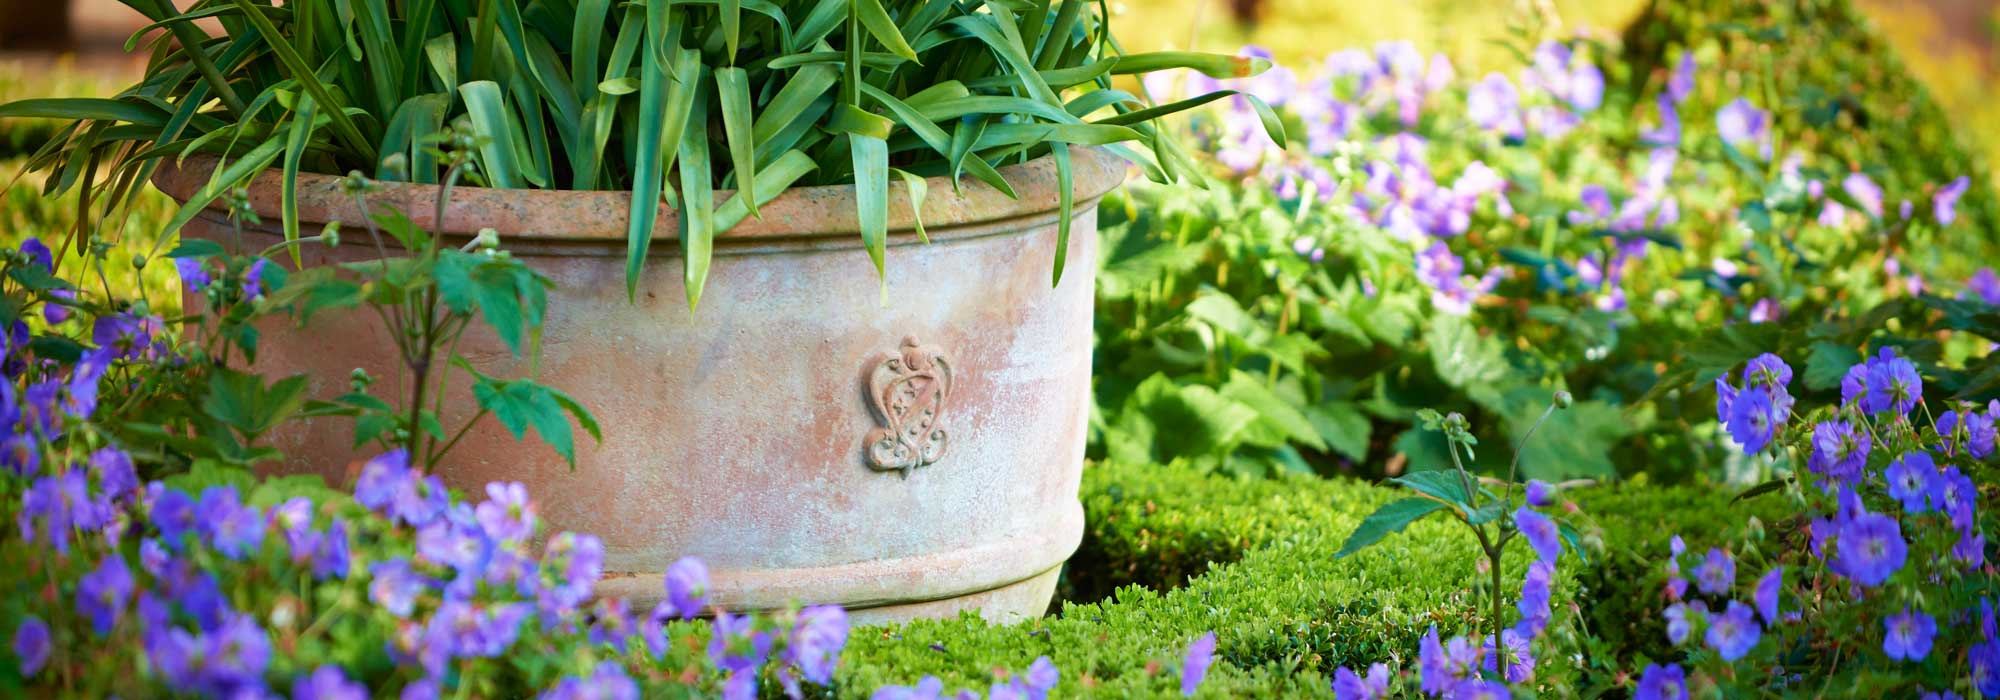 large terracotta pots planting suggestions